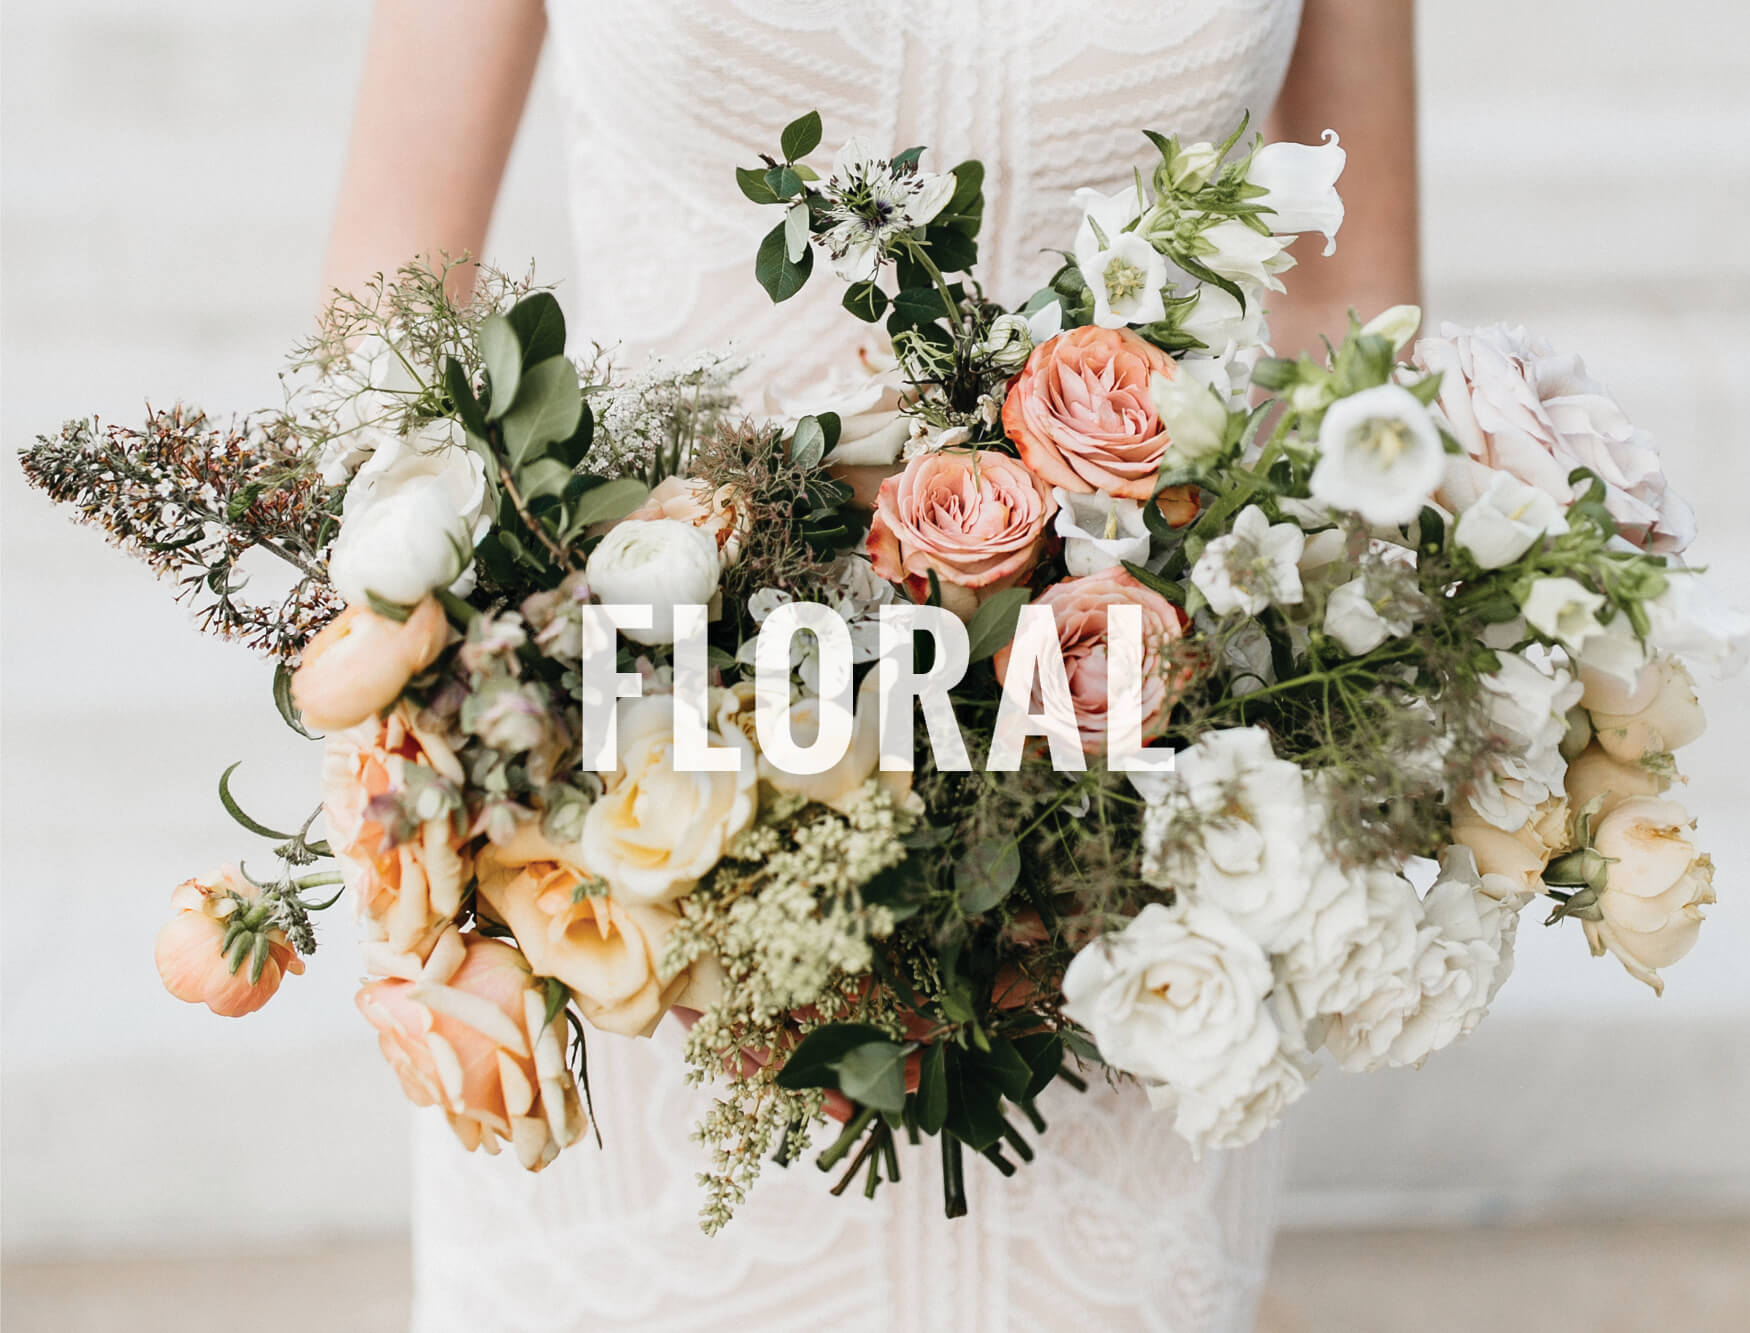 Floral_category